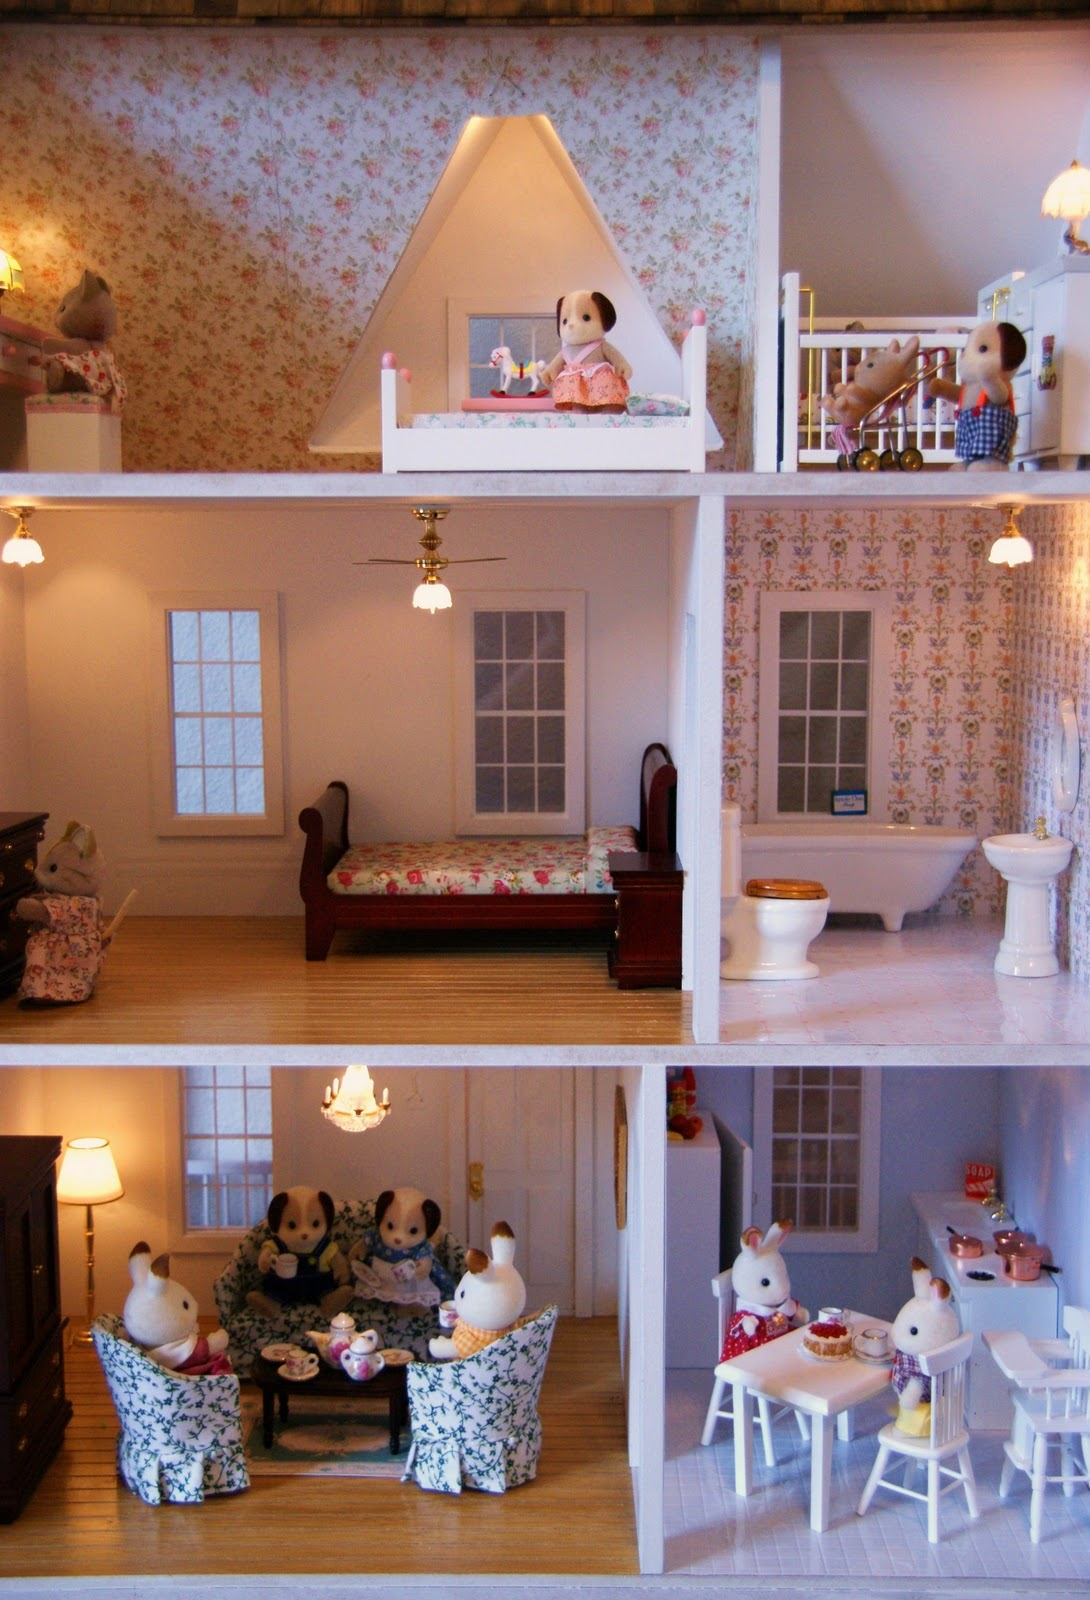 Dollhouse Kitchen Furniture Similiar Hobby Lobby Doll Bed Keywords